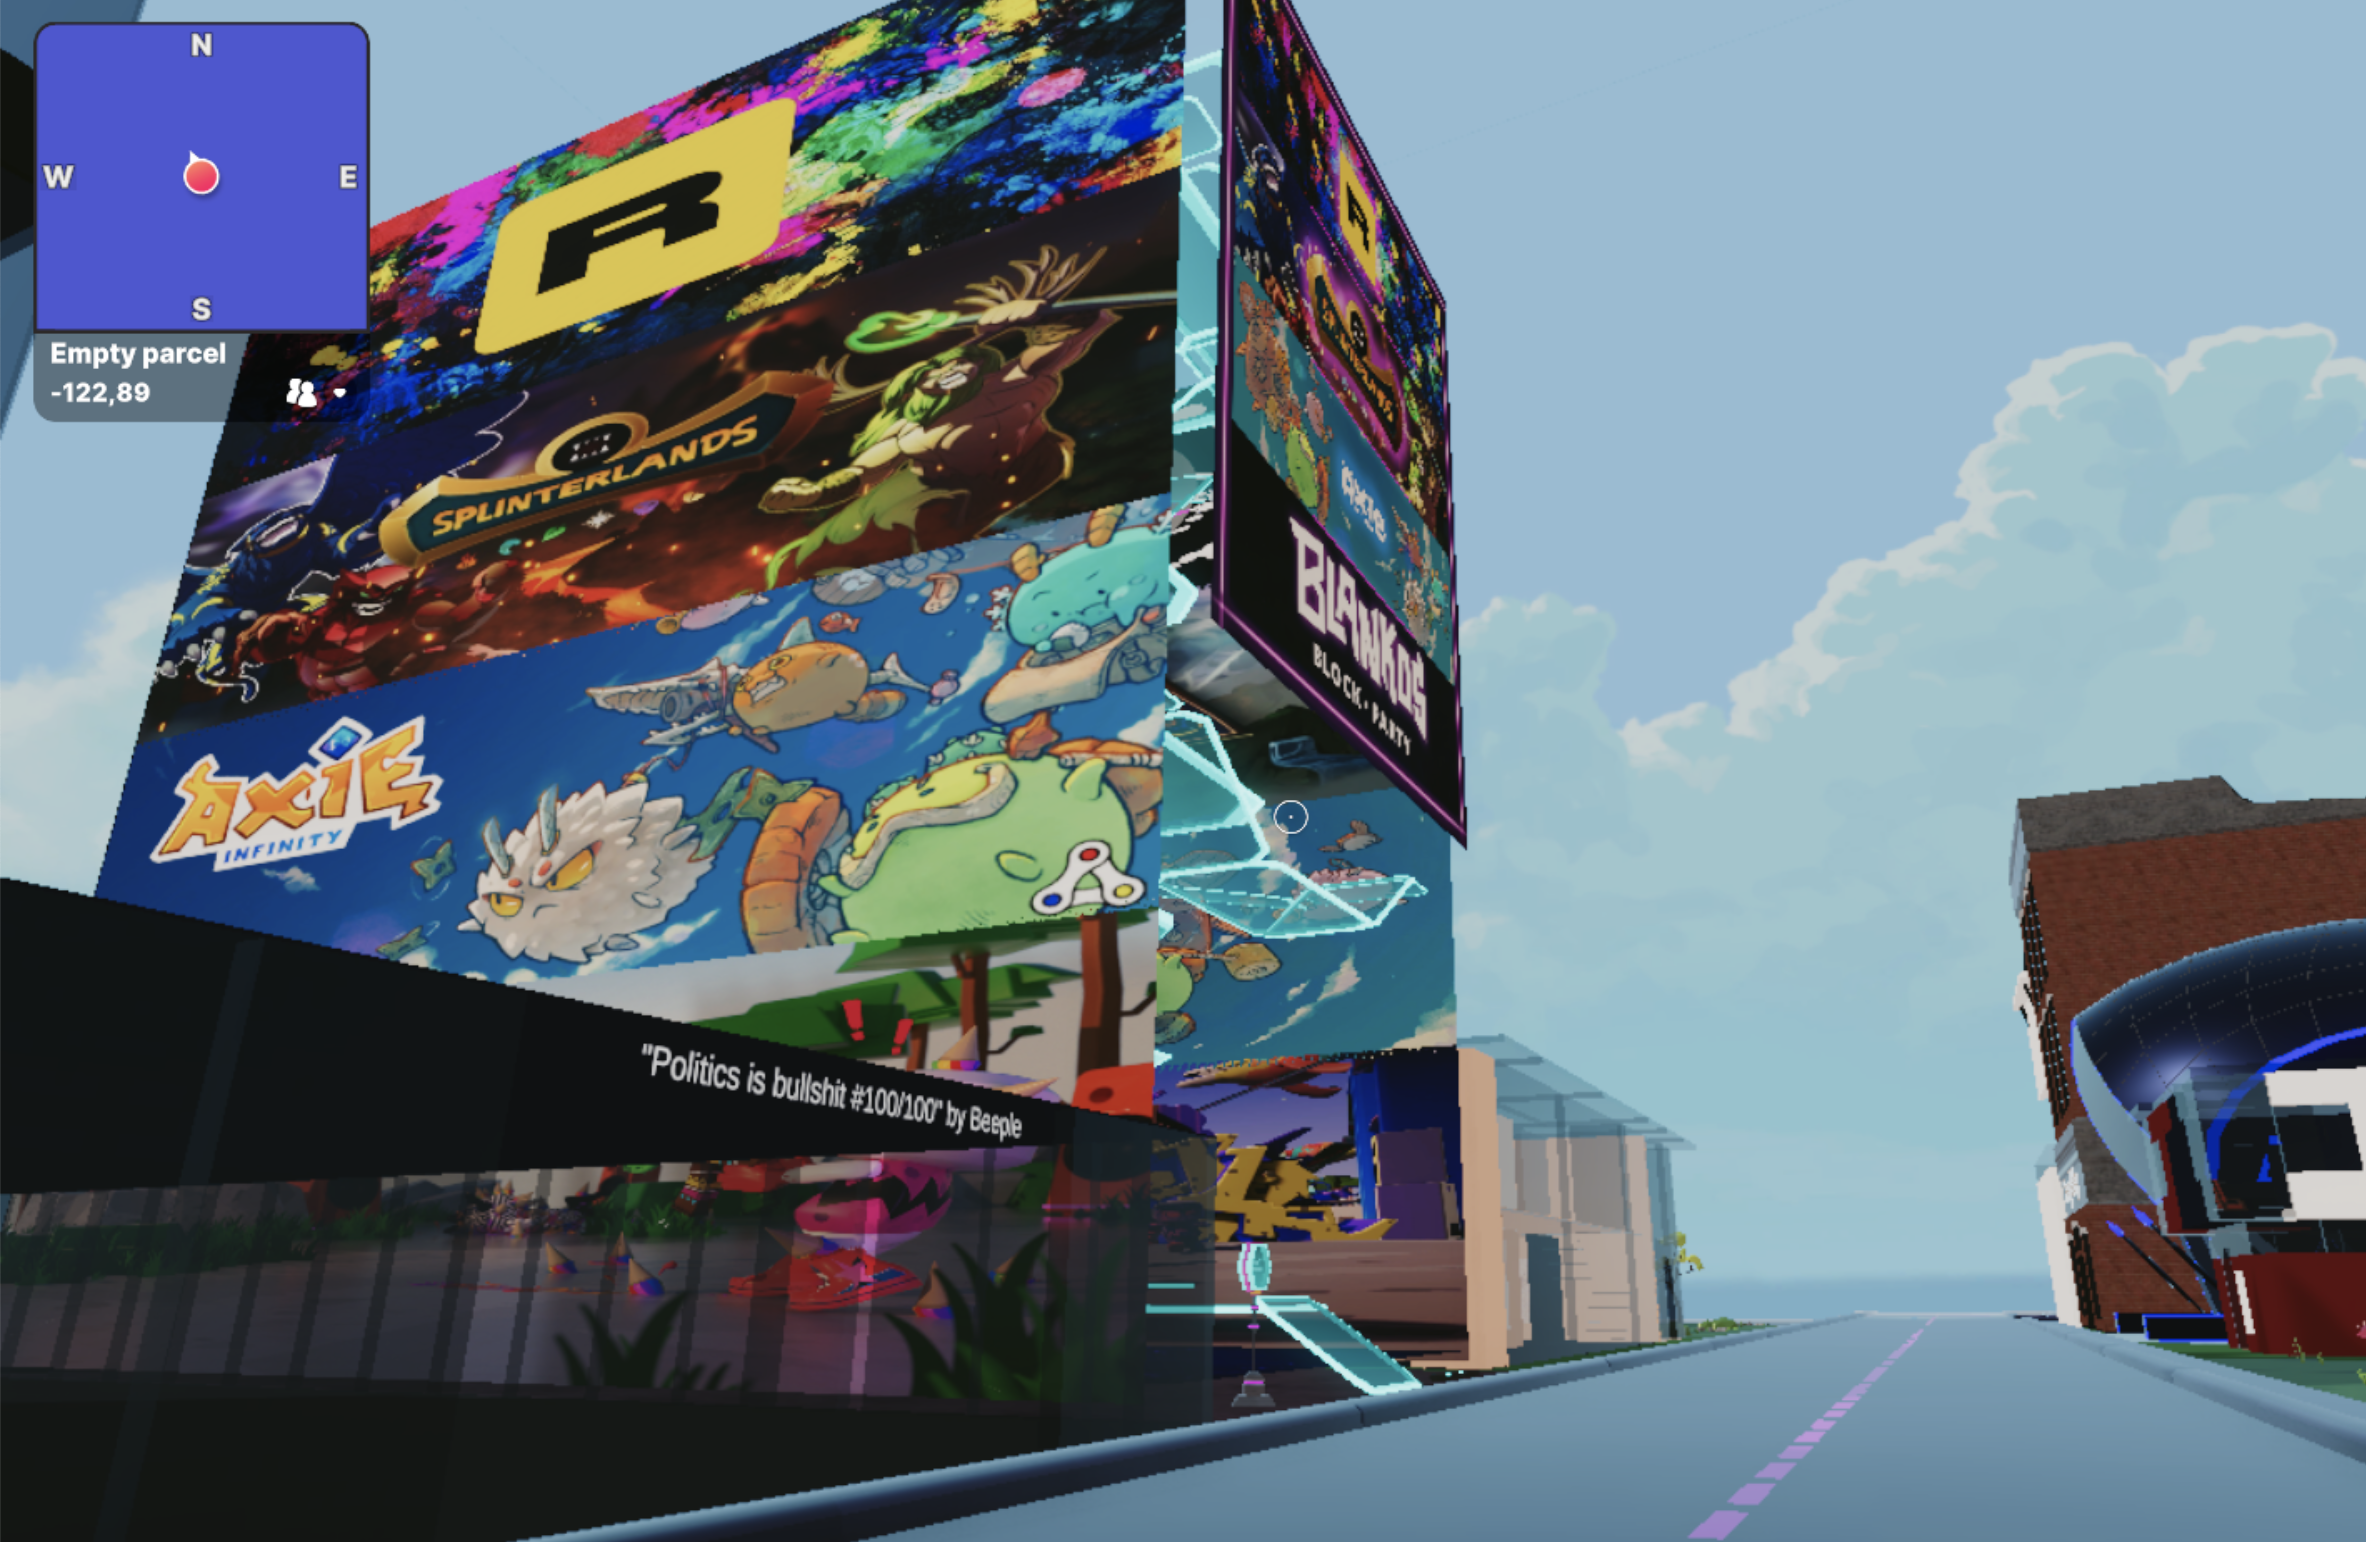 The Galleries High Street in Decentraland, Sep 2021